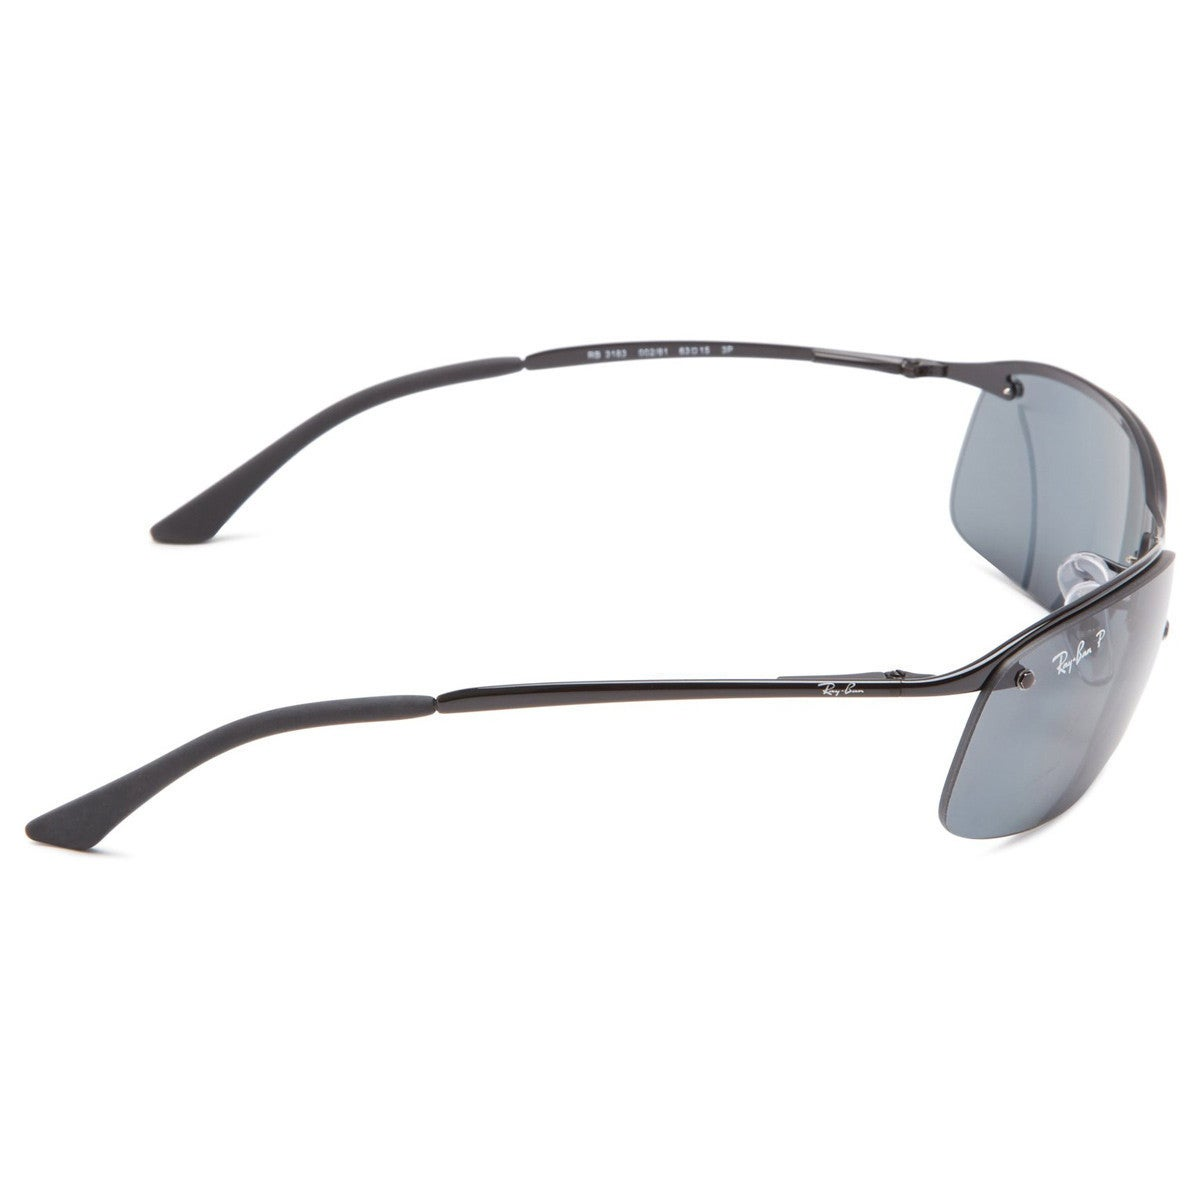 8a96d6df60 Shop Ray-Ban RB3183 002 81 Men s Black Frame Polarized Grey Gradient 63mm  Lens Sunglasses - Free Shipping Today - Overstock - 14331186